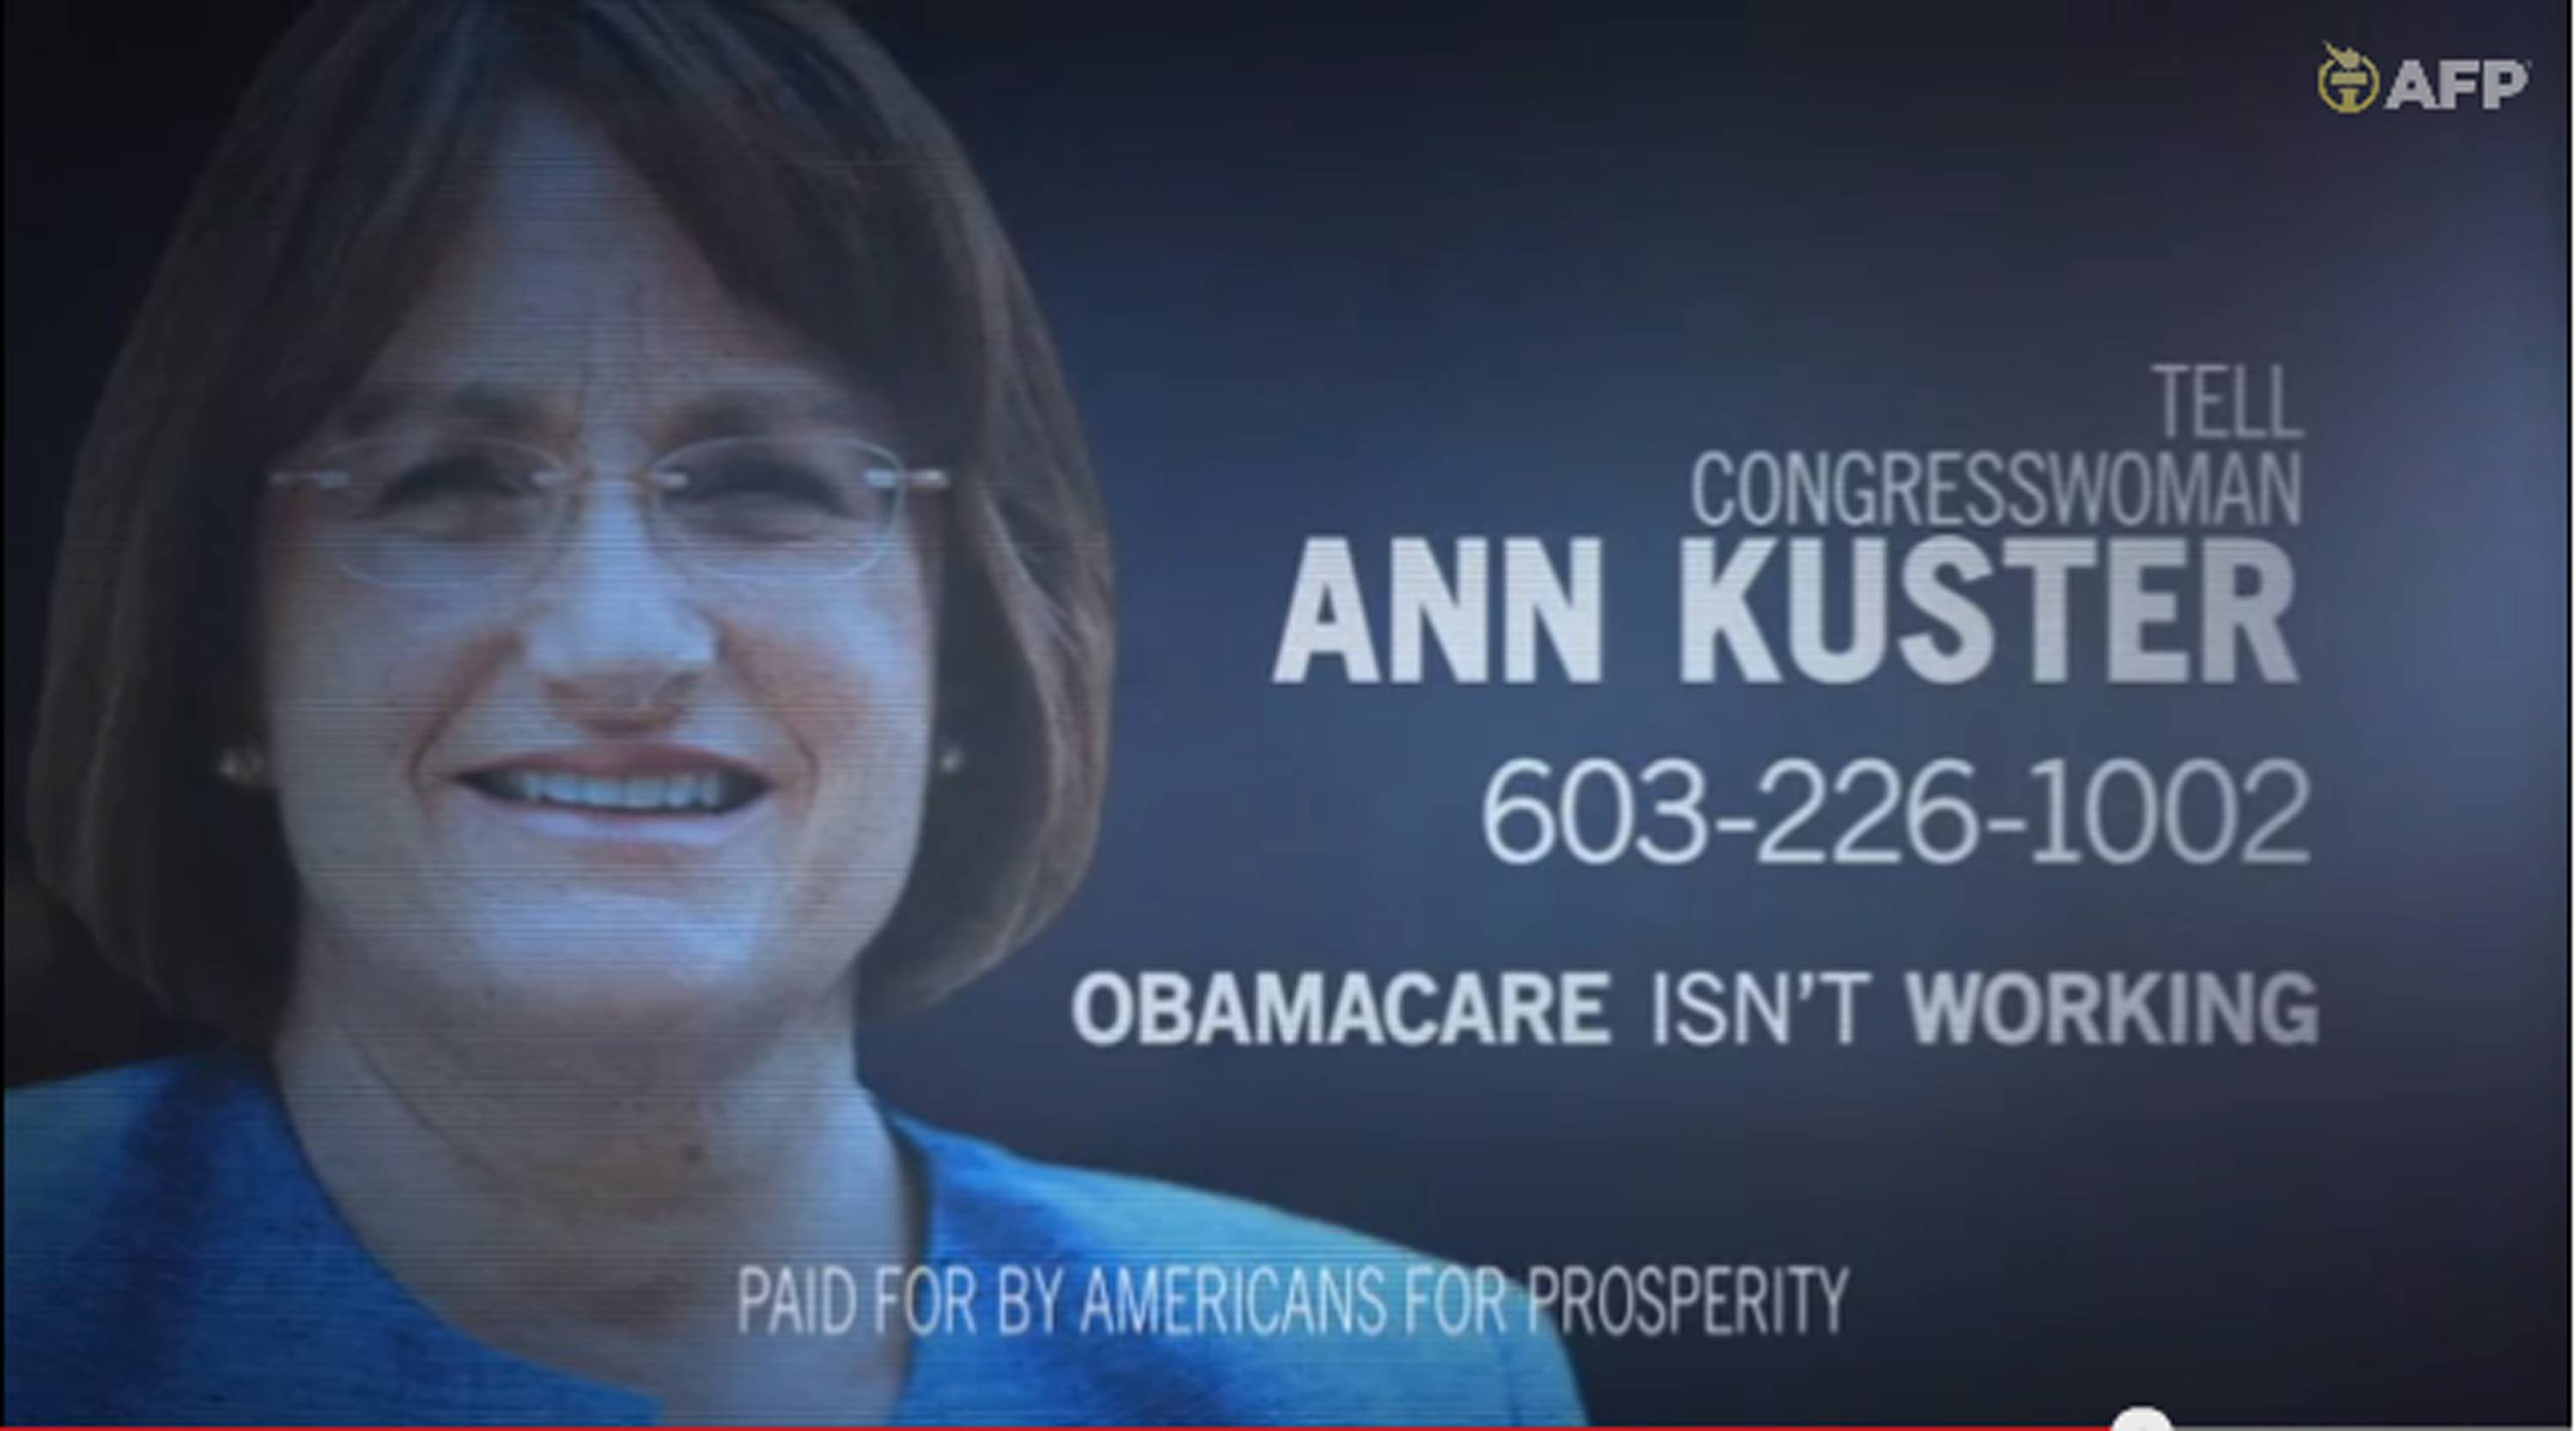 This framegrab image from video provided by Americans for Prosperity, shows a political ad against Rep. Ann McLane Kuster, D-N.H. stating the Affordable Care Act is not working.